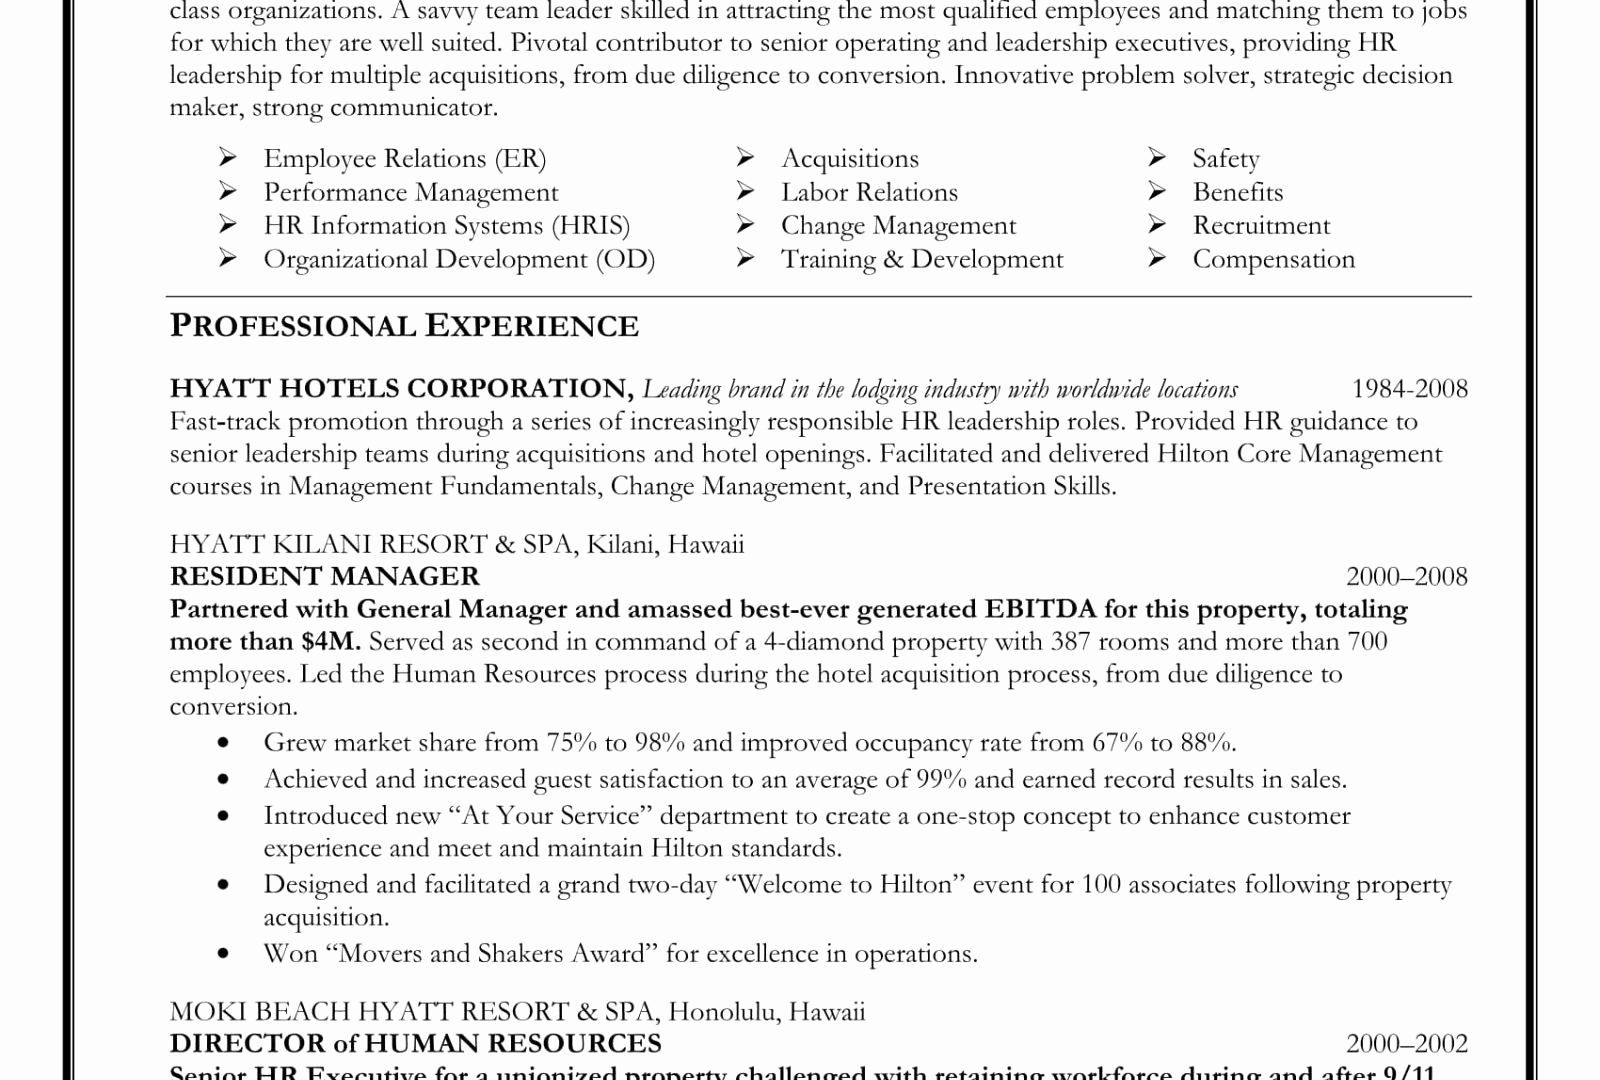 Property Manager Job Description Resume - Property Management Job Description for Resume Inspirational Resume